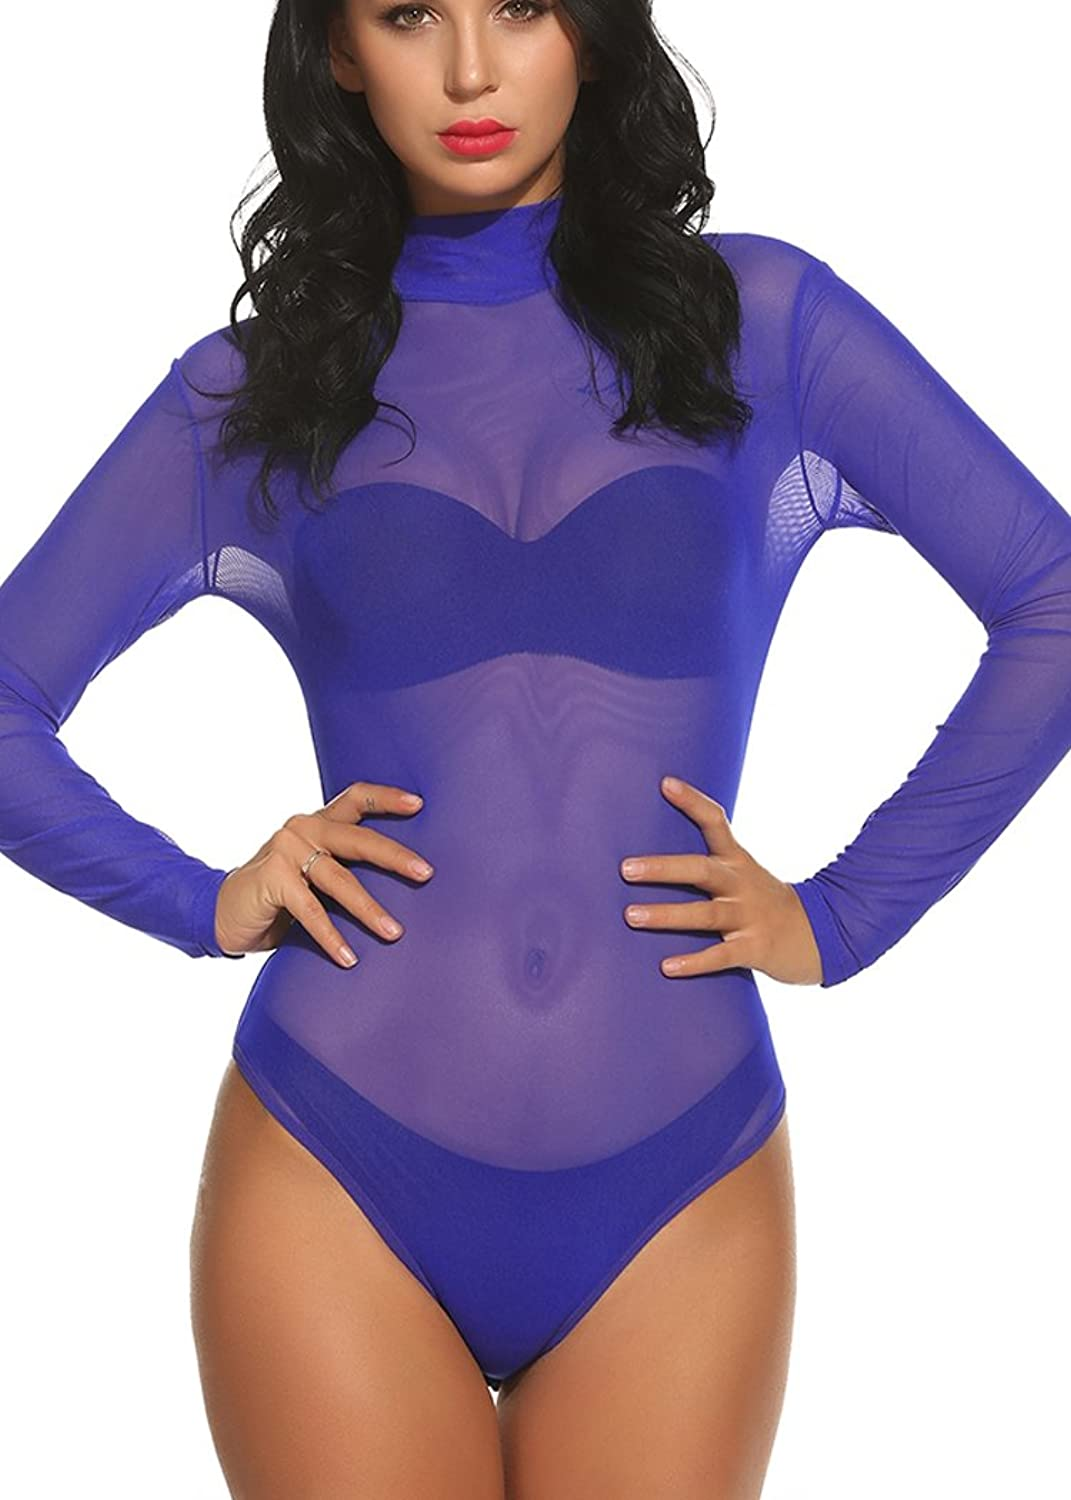 OURS Women's Sexy Long Sleeve Sheer Mesh Corset Bodysuit Top